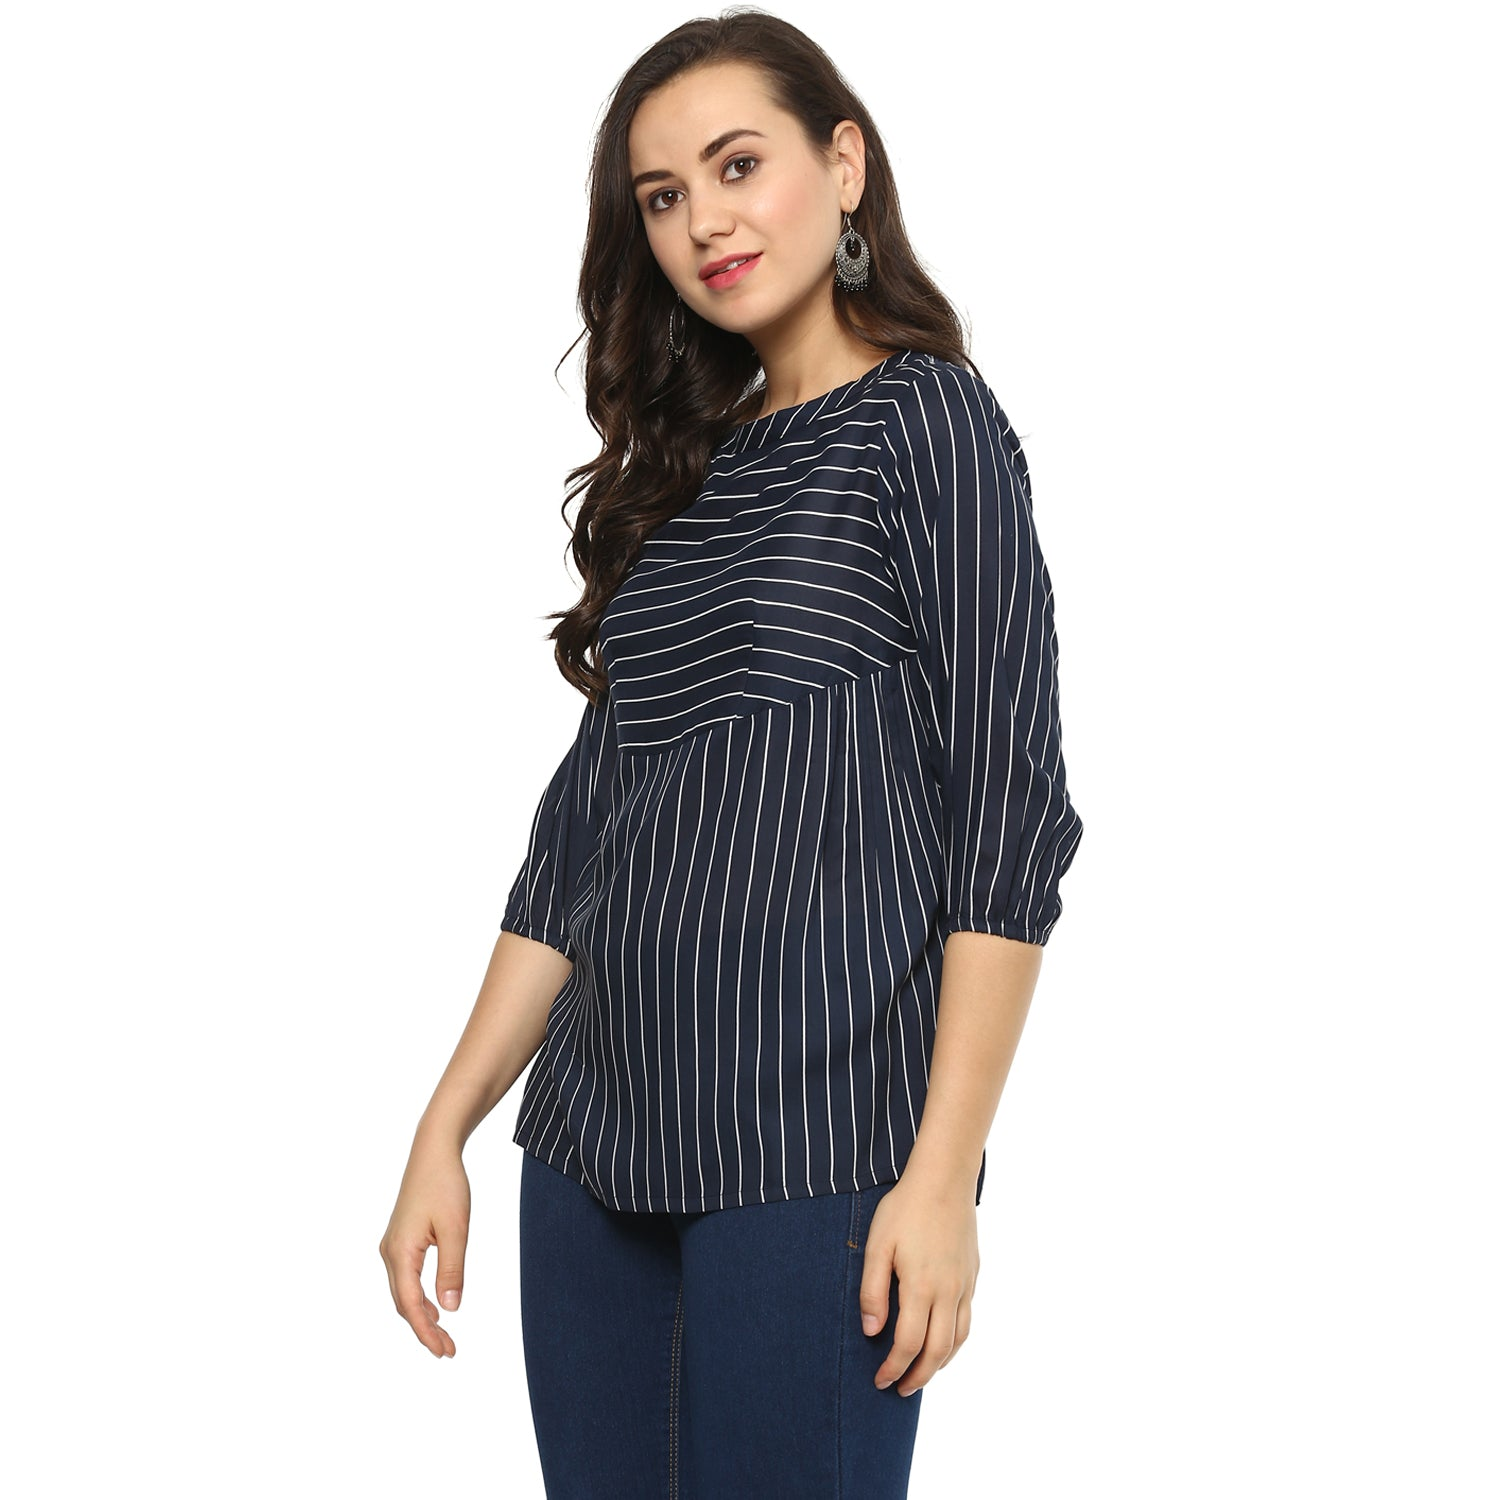 Idalia Women Navy Blue Striped Top